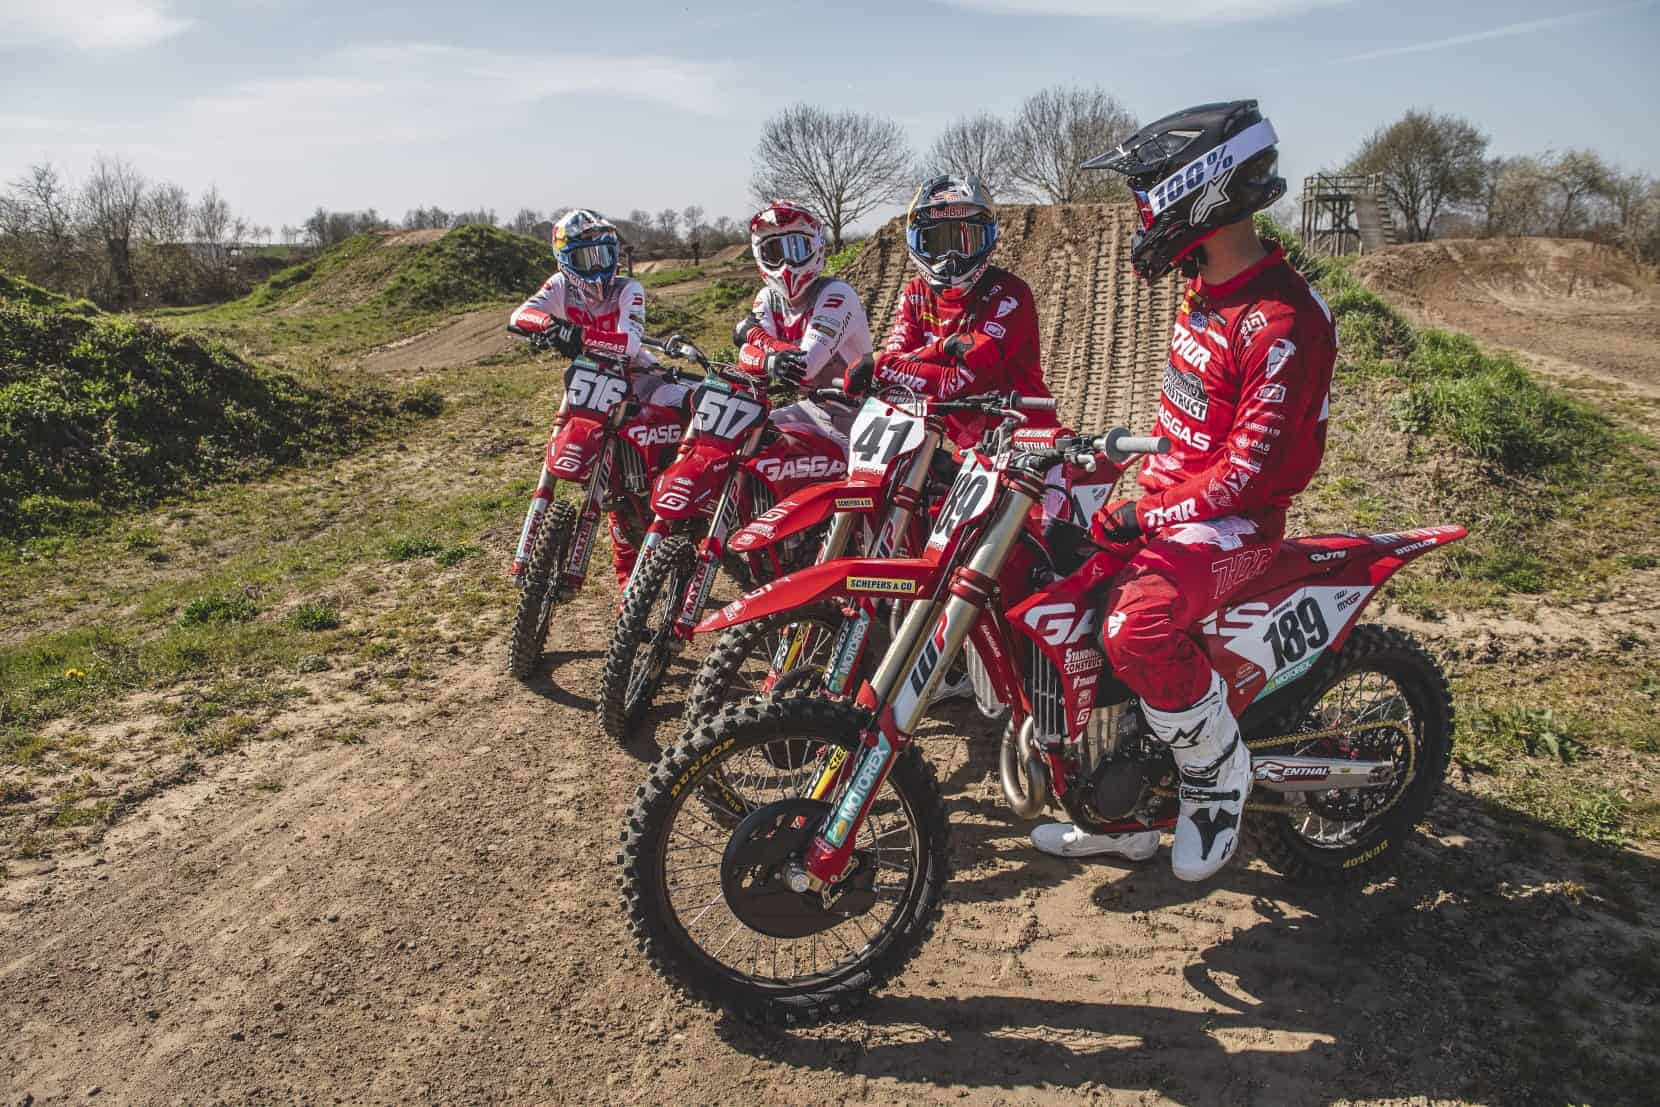 Get on the Gas: Die GASGAS MX-Werksteams